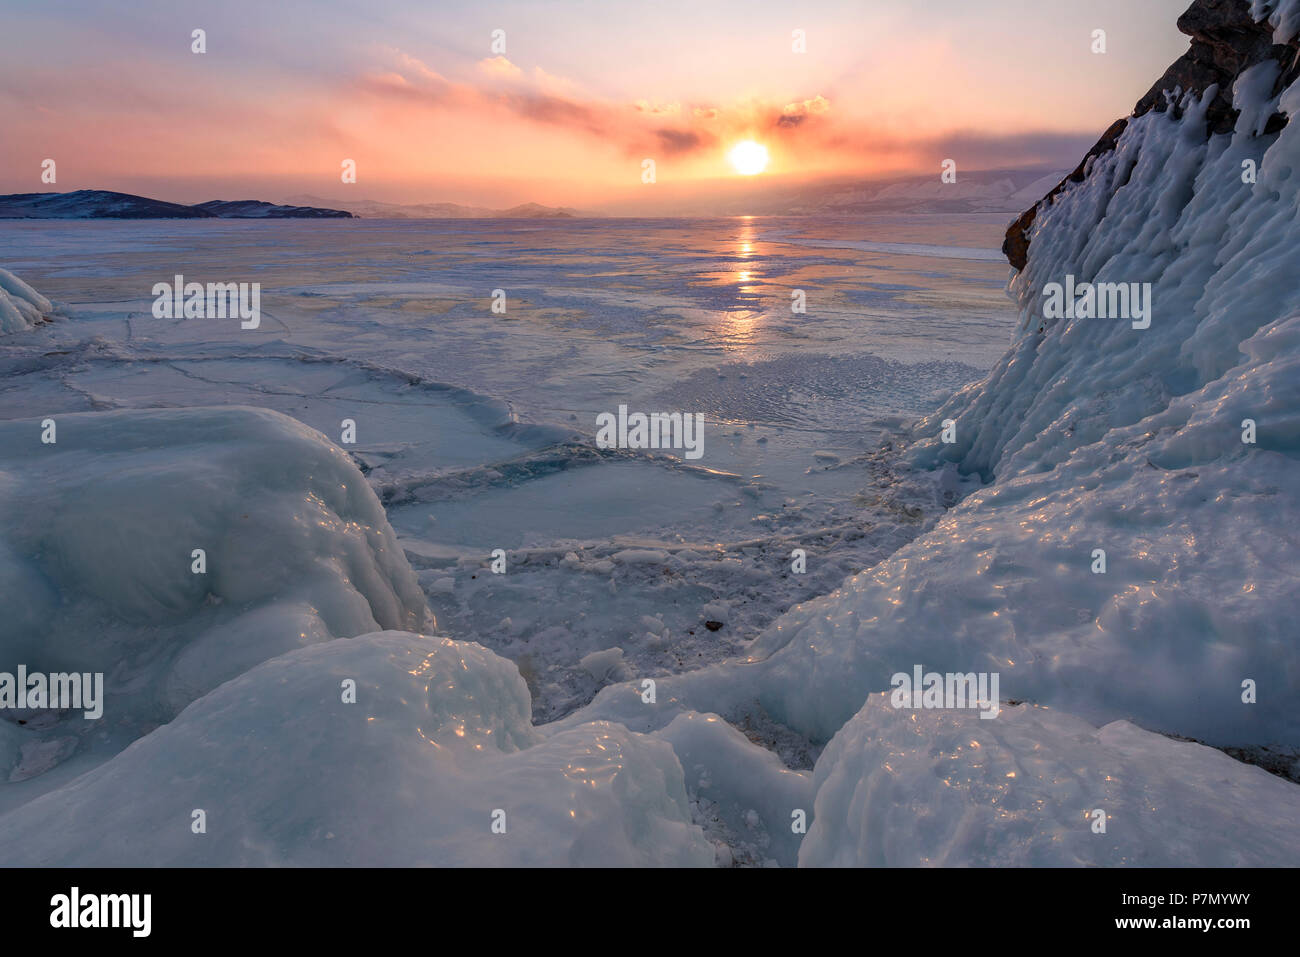 Ice stalactites in a cave at the shore at sunset at lake Baikal, Irkutsk region, Siberia, Russia - Stock Image